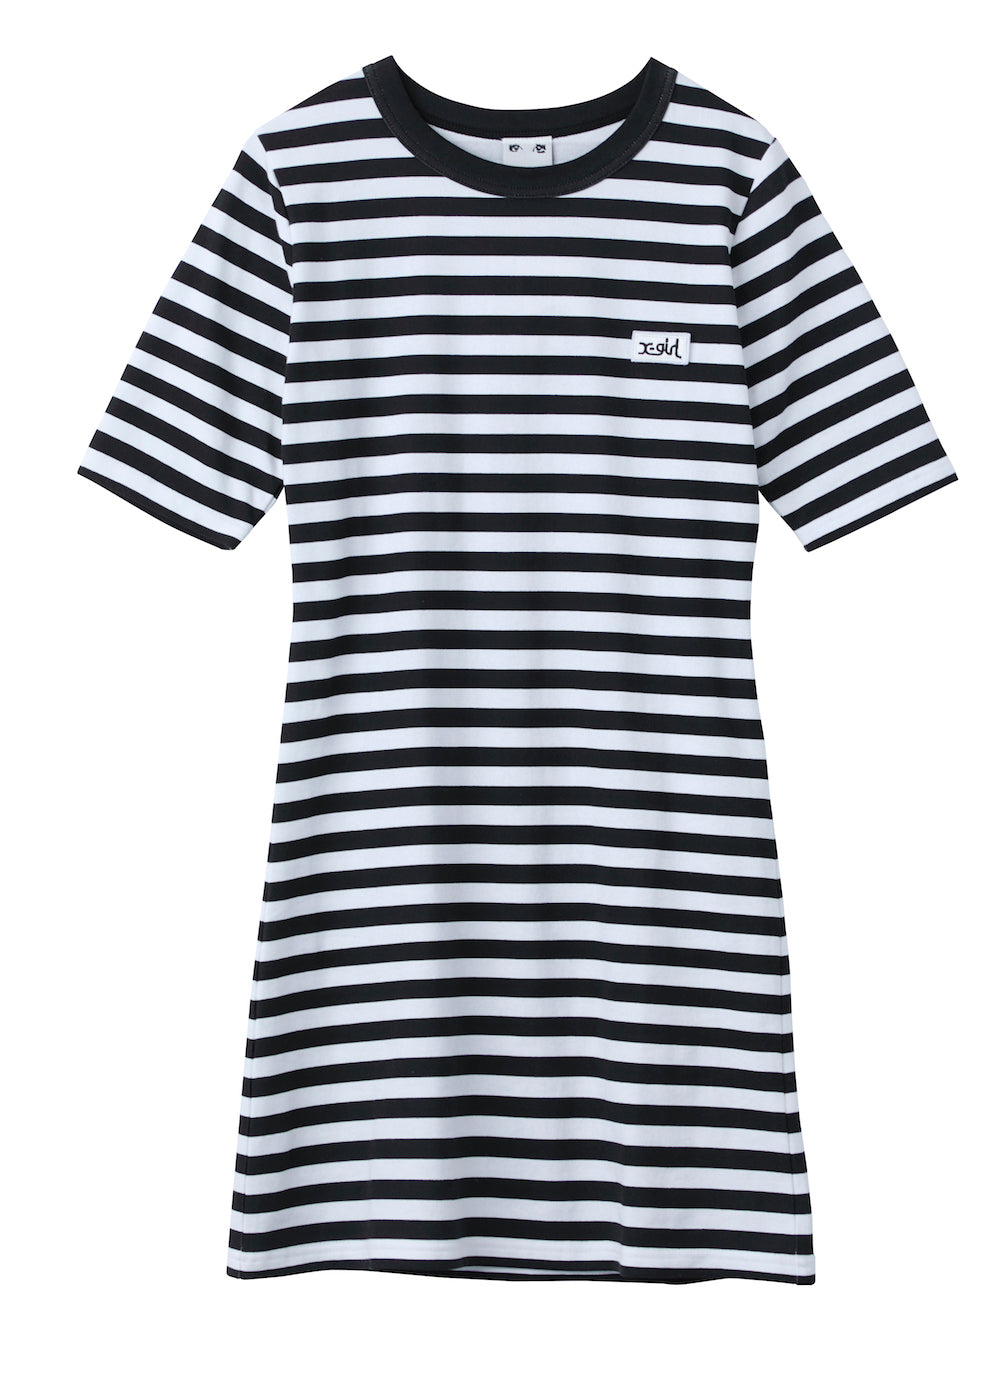 STRIPED BASIC TEE DRESS - X-Girl